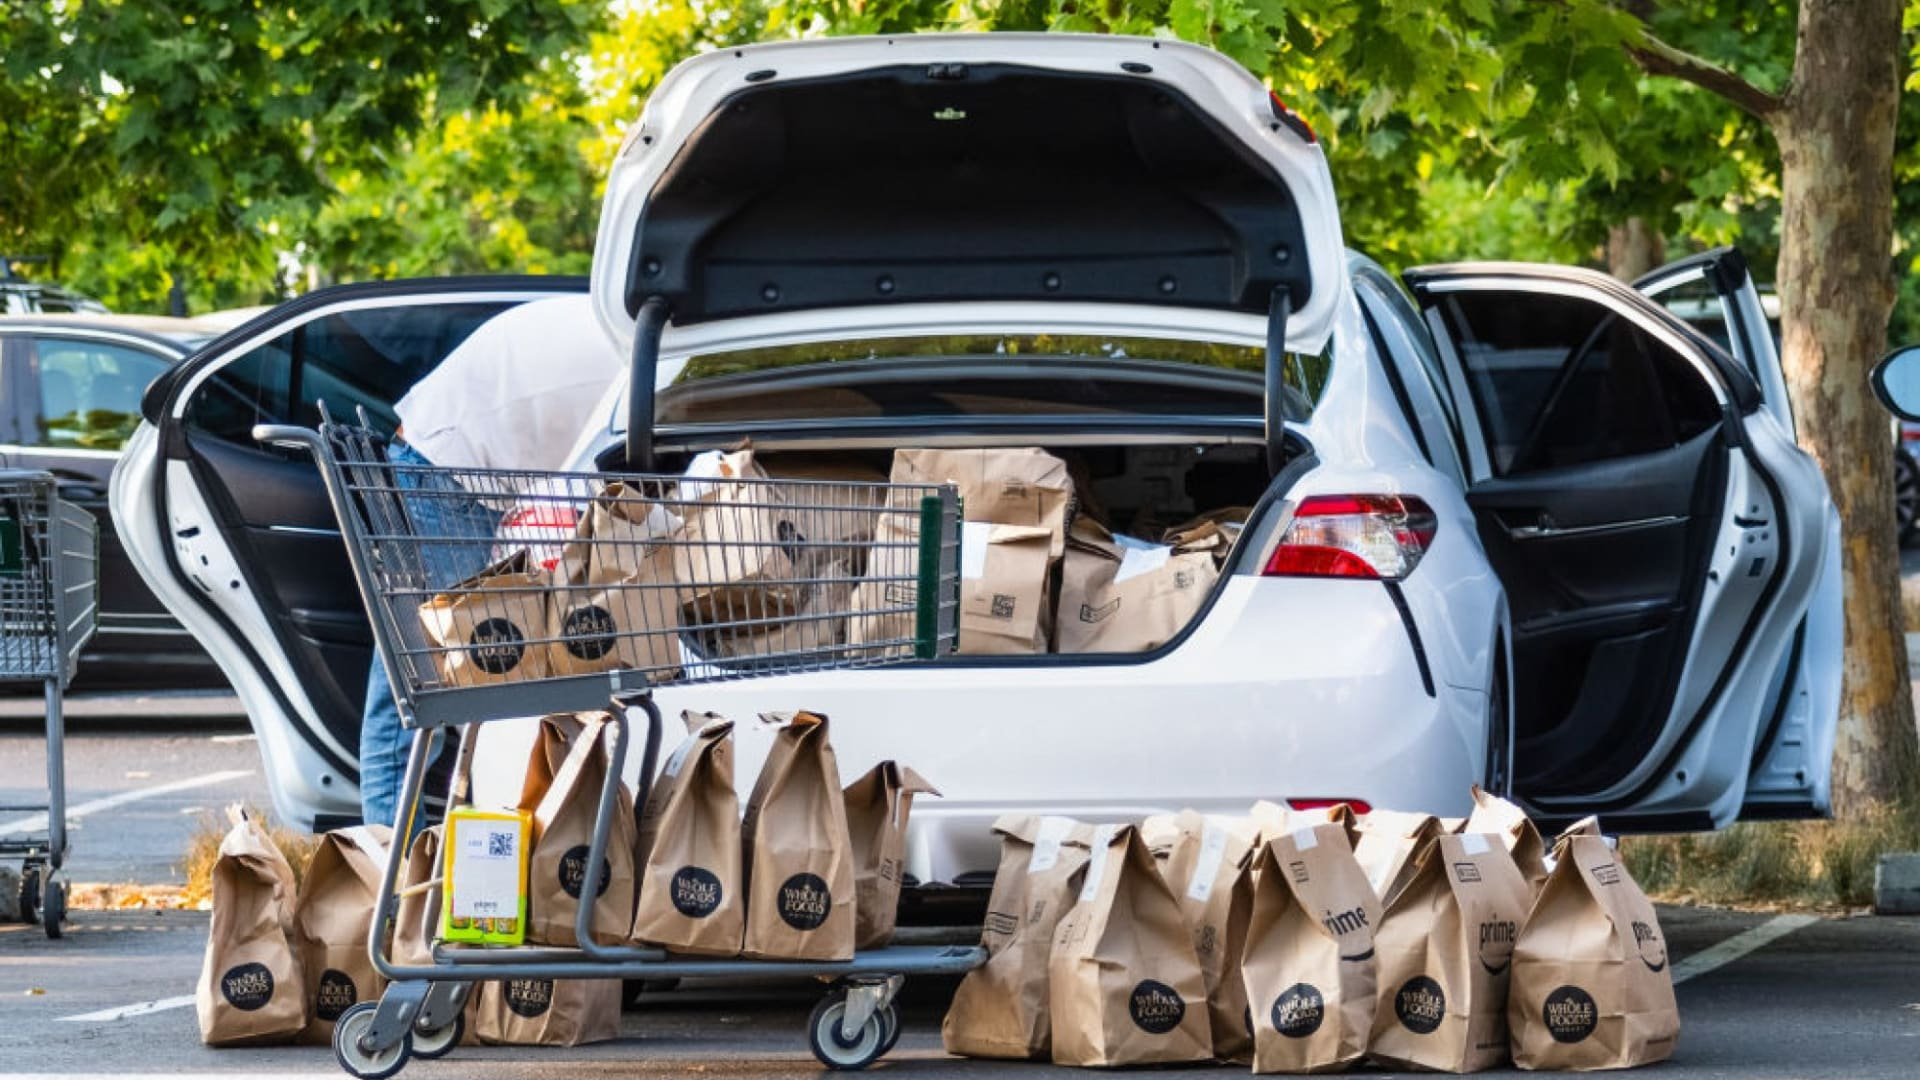 Amazon's New $10 Delivery Fee Comes With 1 Major Perk. But Very Few Know of It